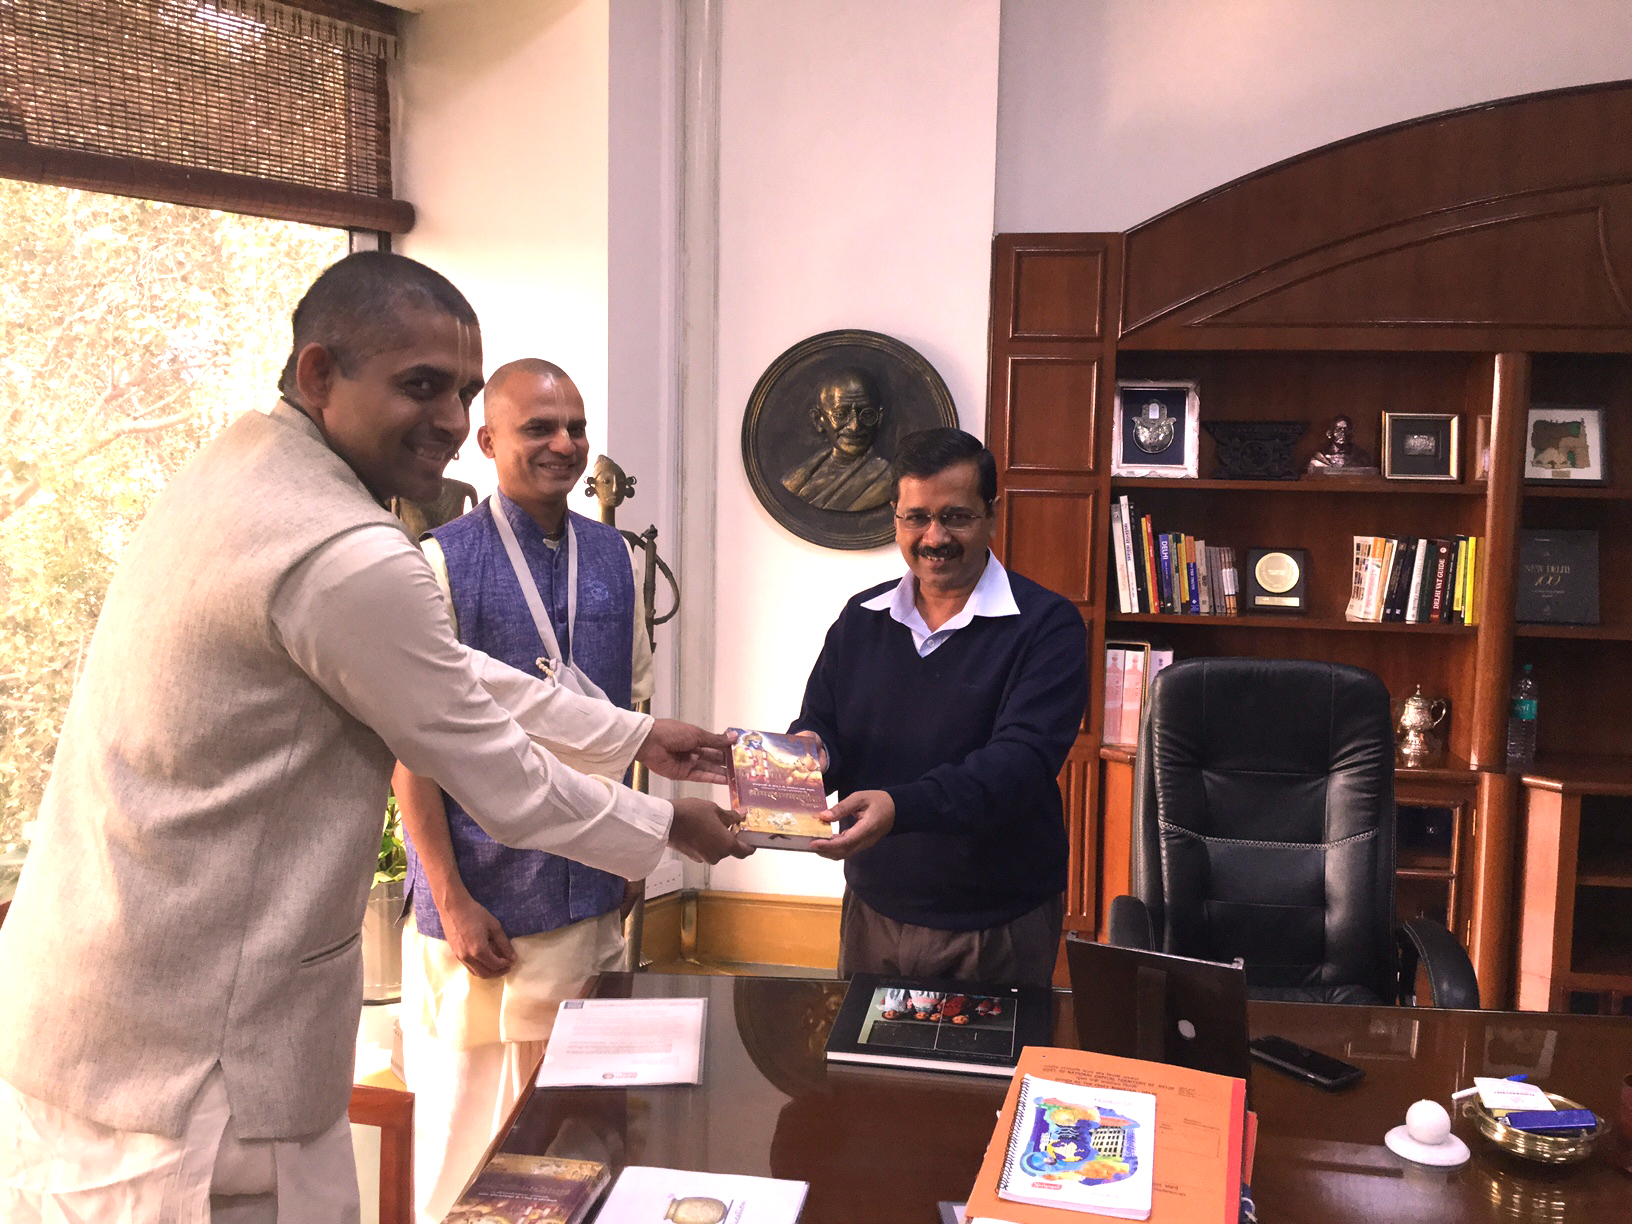 Chief Minister of Delhi Sri Arvind Kejriwal met devotees of Vrindavan Chandrodaya Mandir1